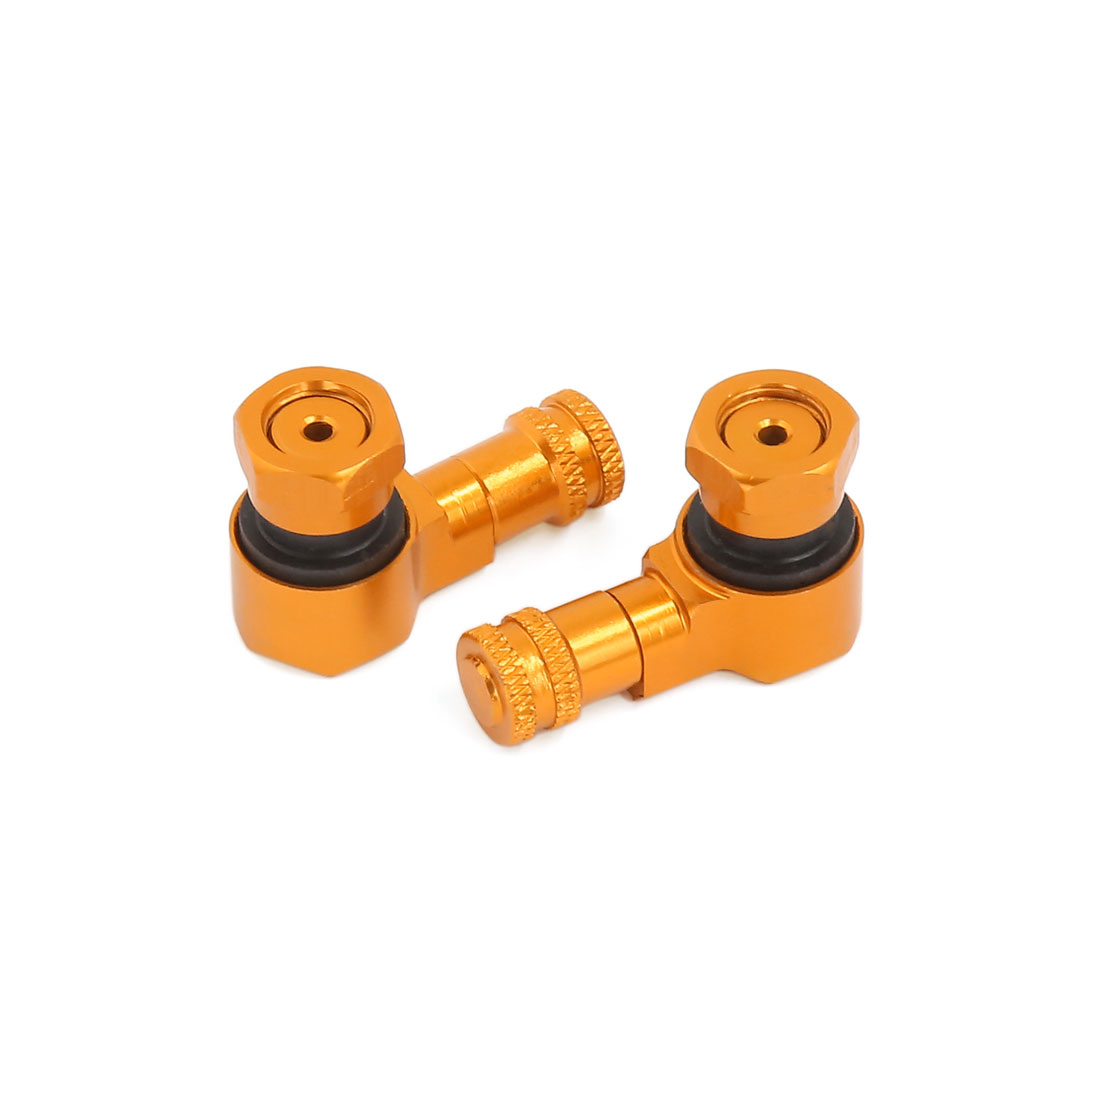 Motorcycle Scooter Tubeless Tire 90 Degree Bent Angled Standard Air Valve Stem Gold Tone 2pcs